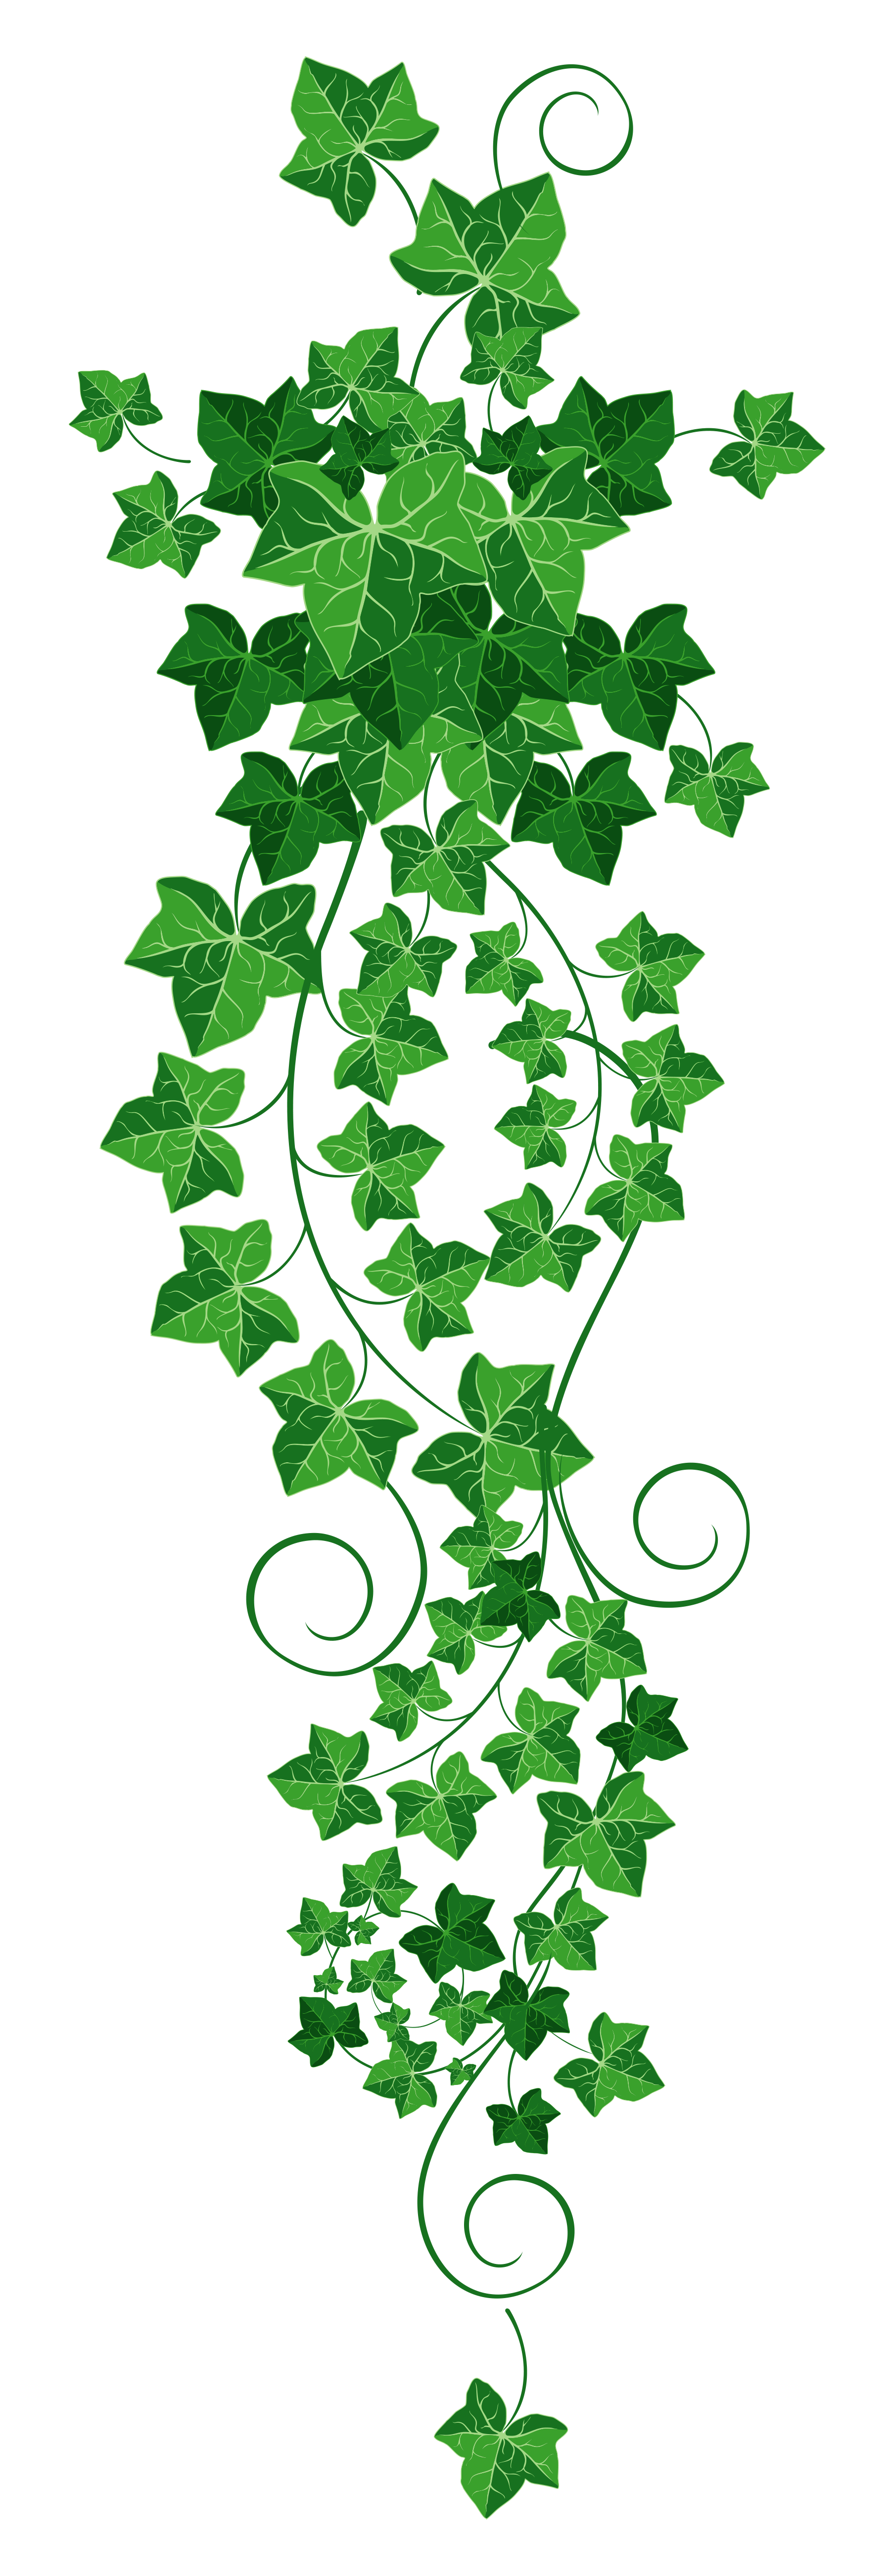 Ivy clip art png. Vine clipart picture gallery